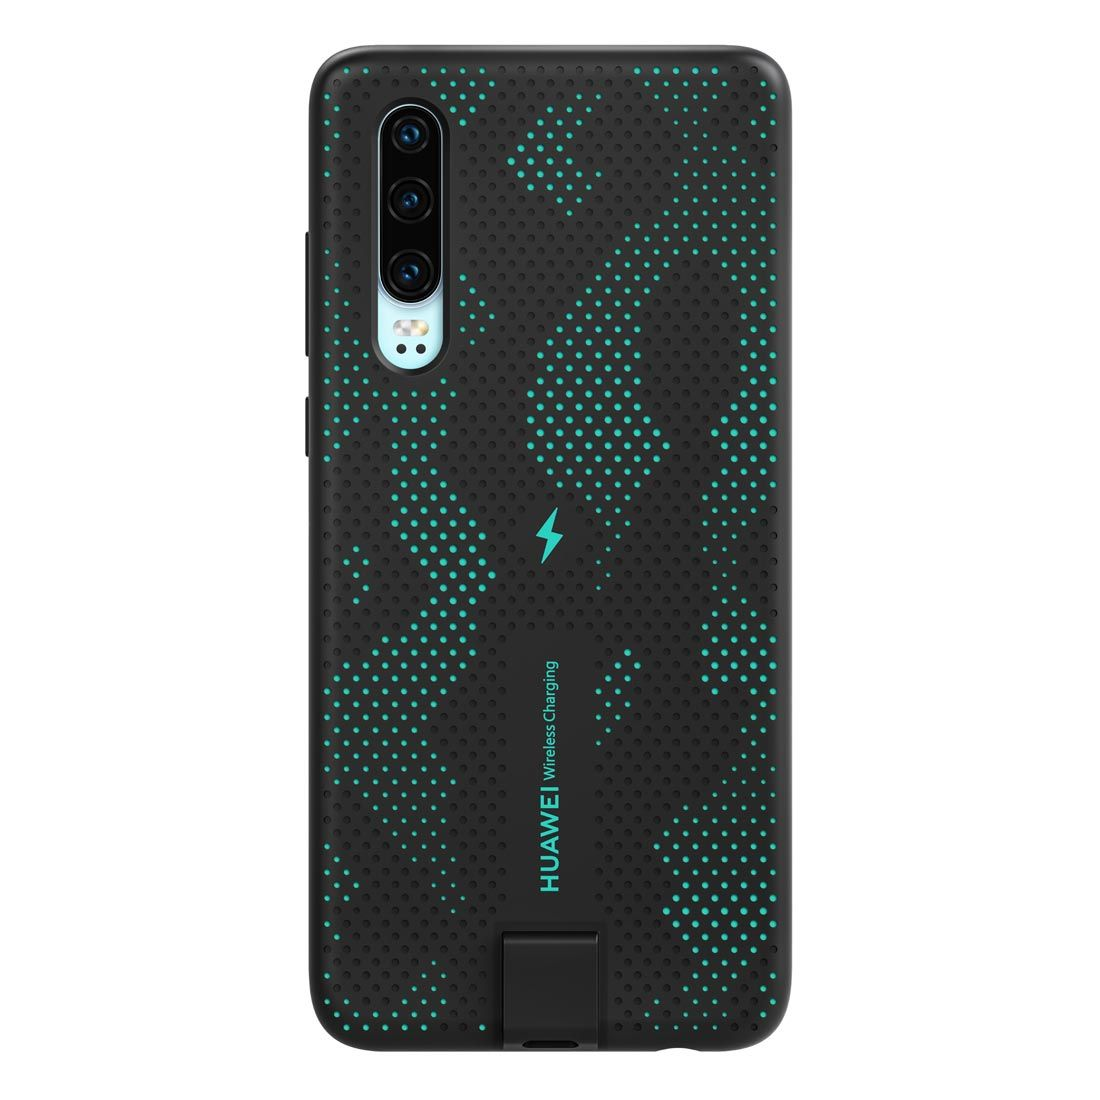 Etui Huawei Wireless Charging Case do Huawei P30